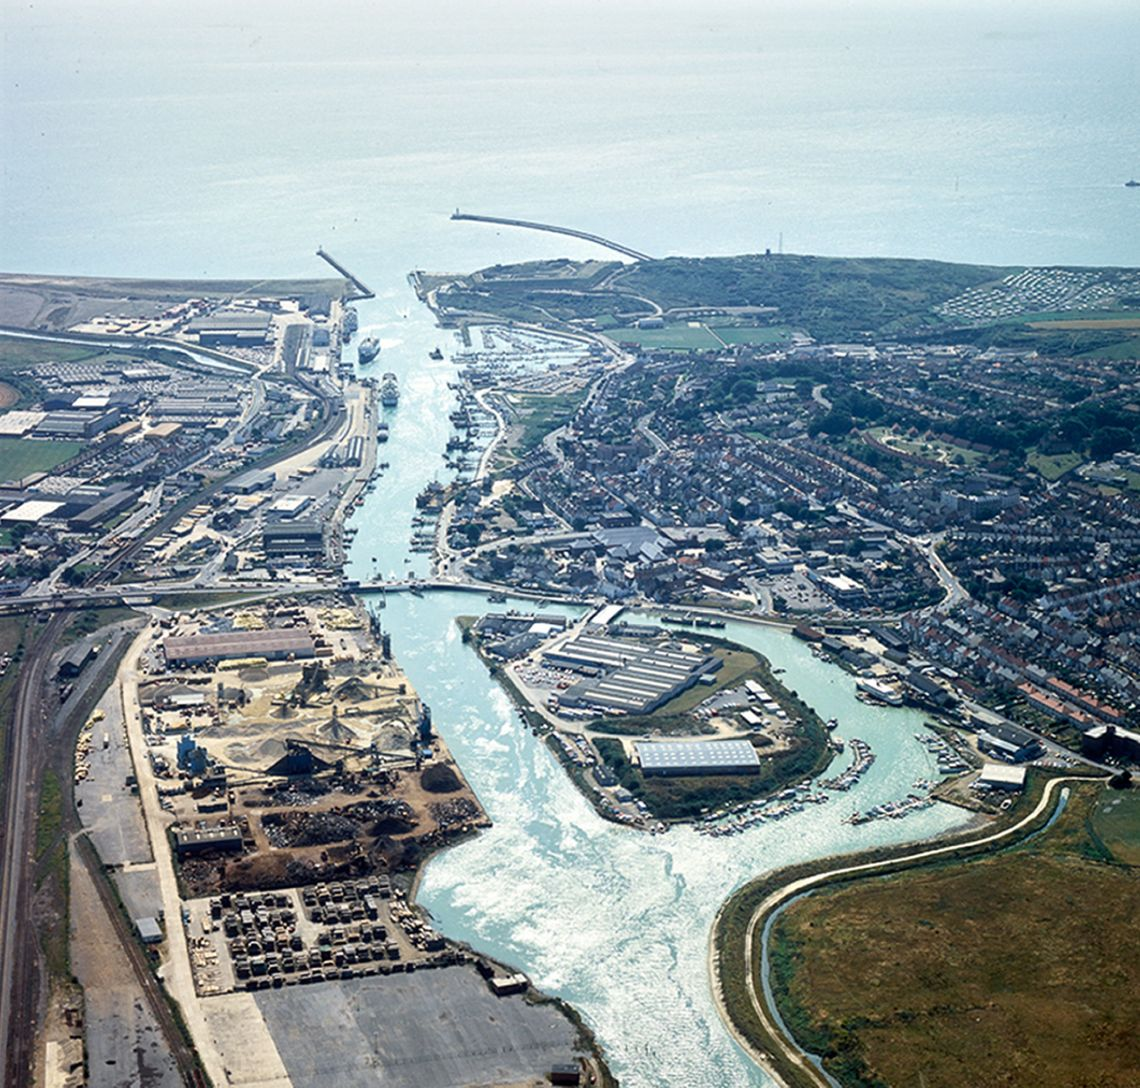 Newhaven Docks in 1983.